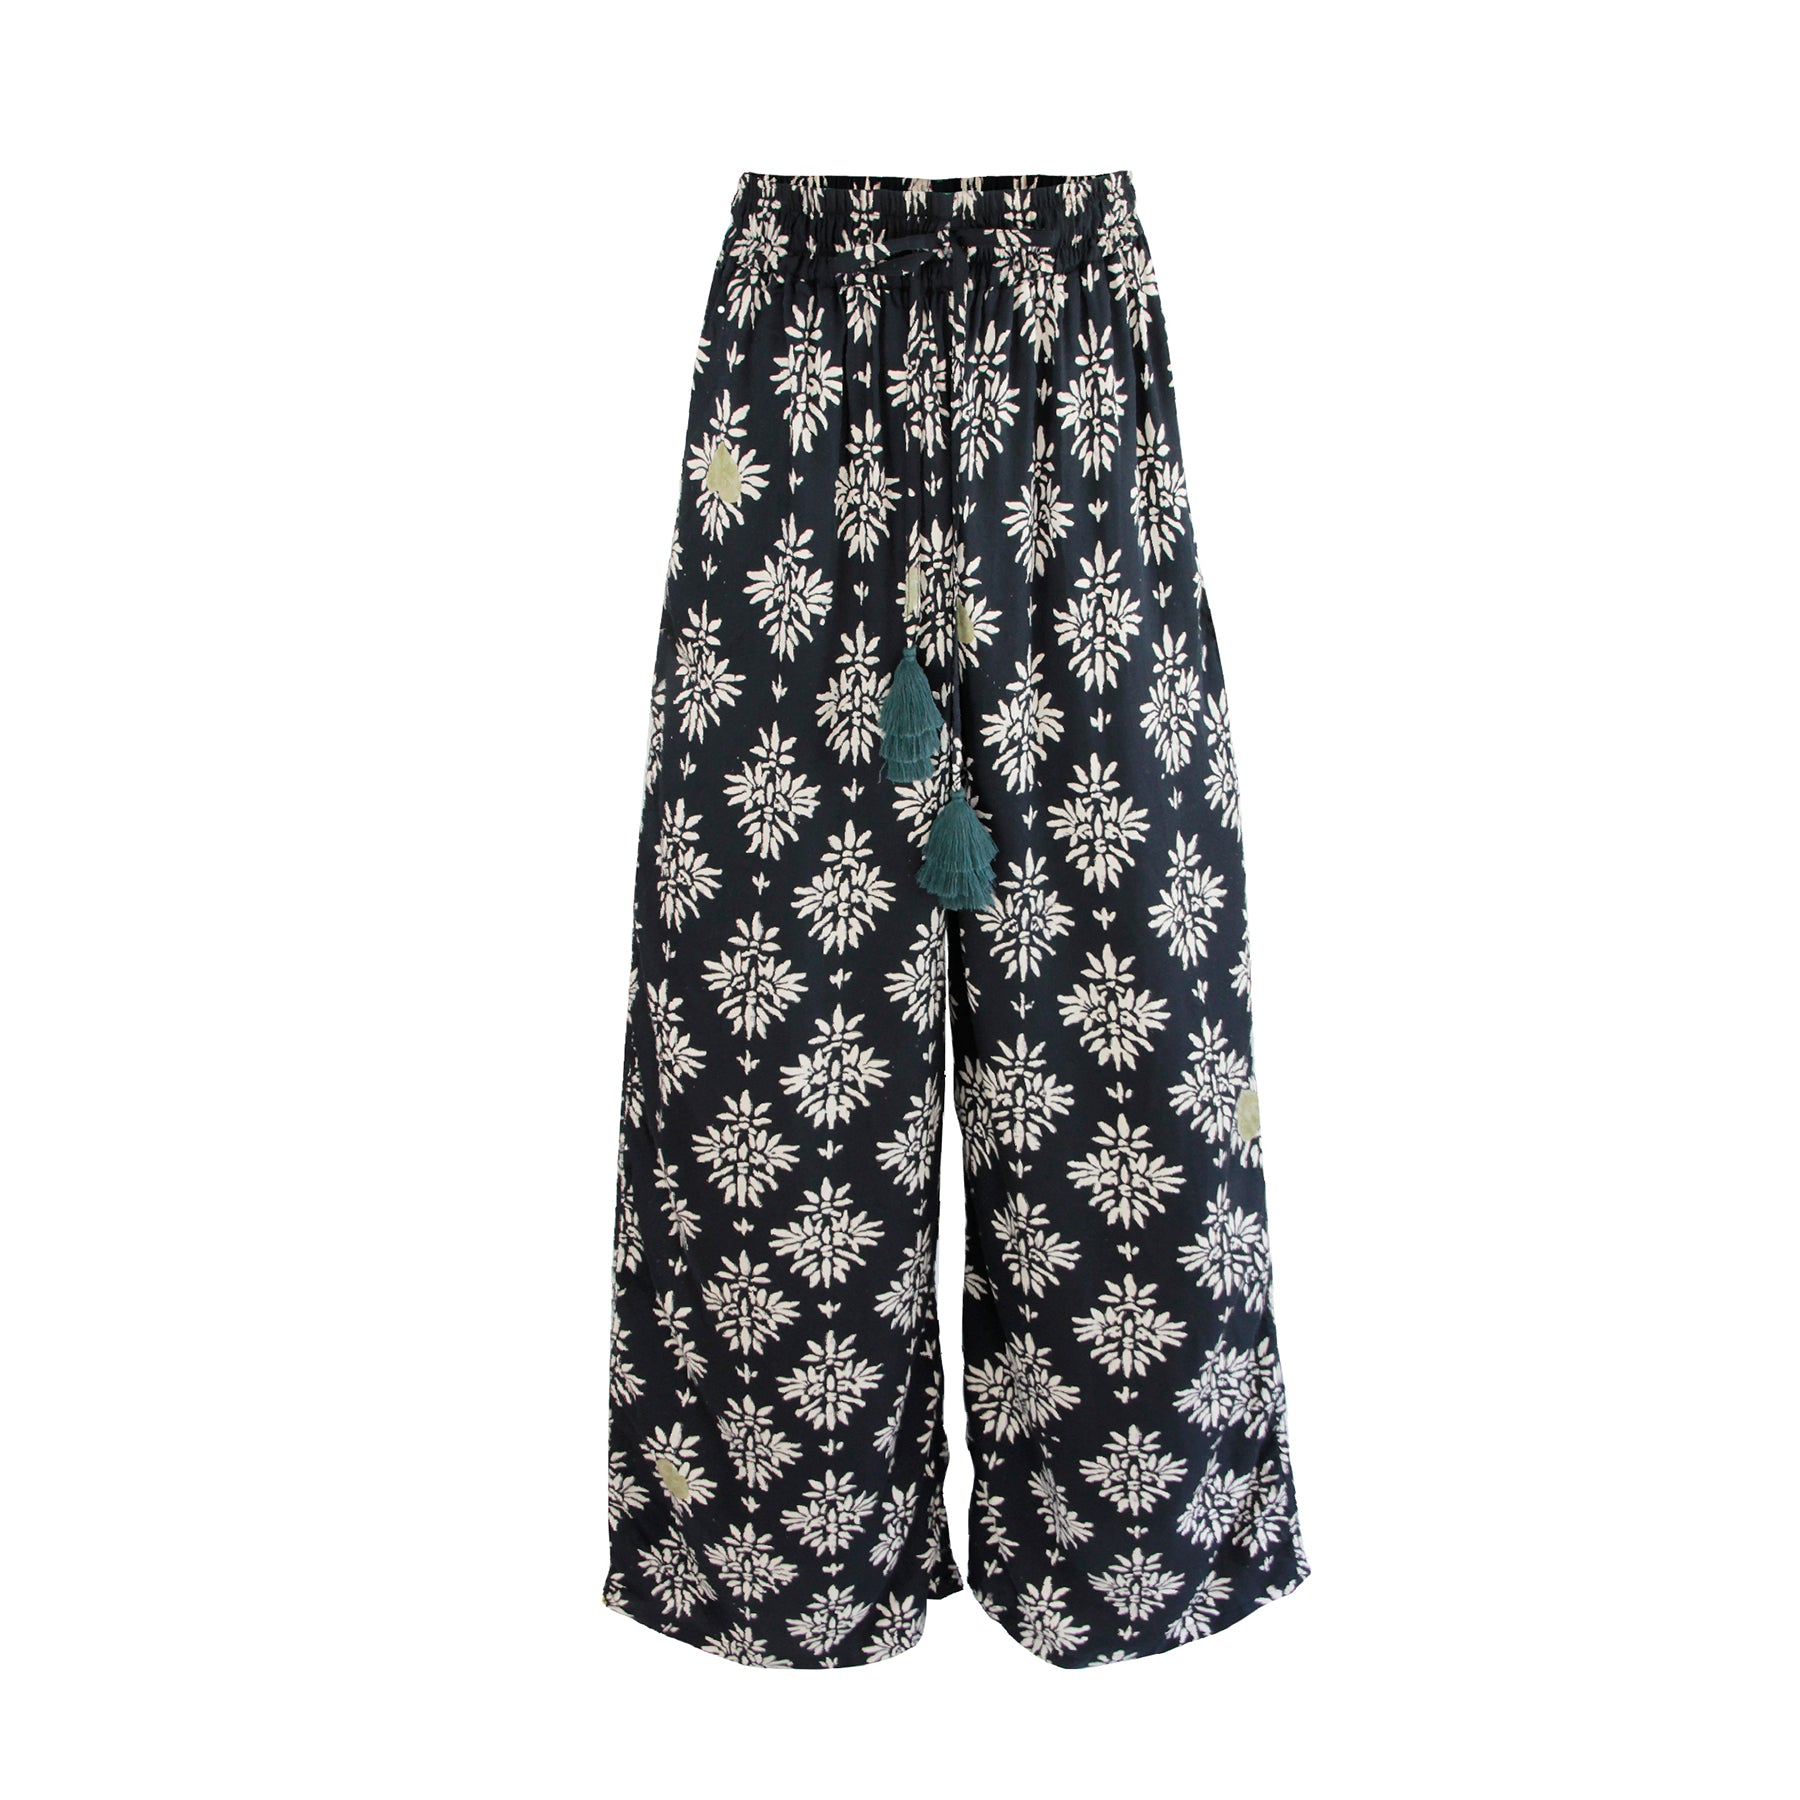 Goa lotus pants